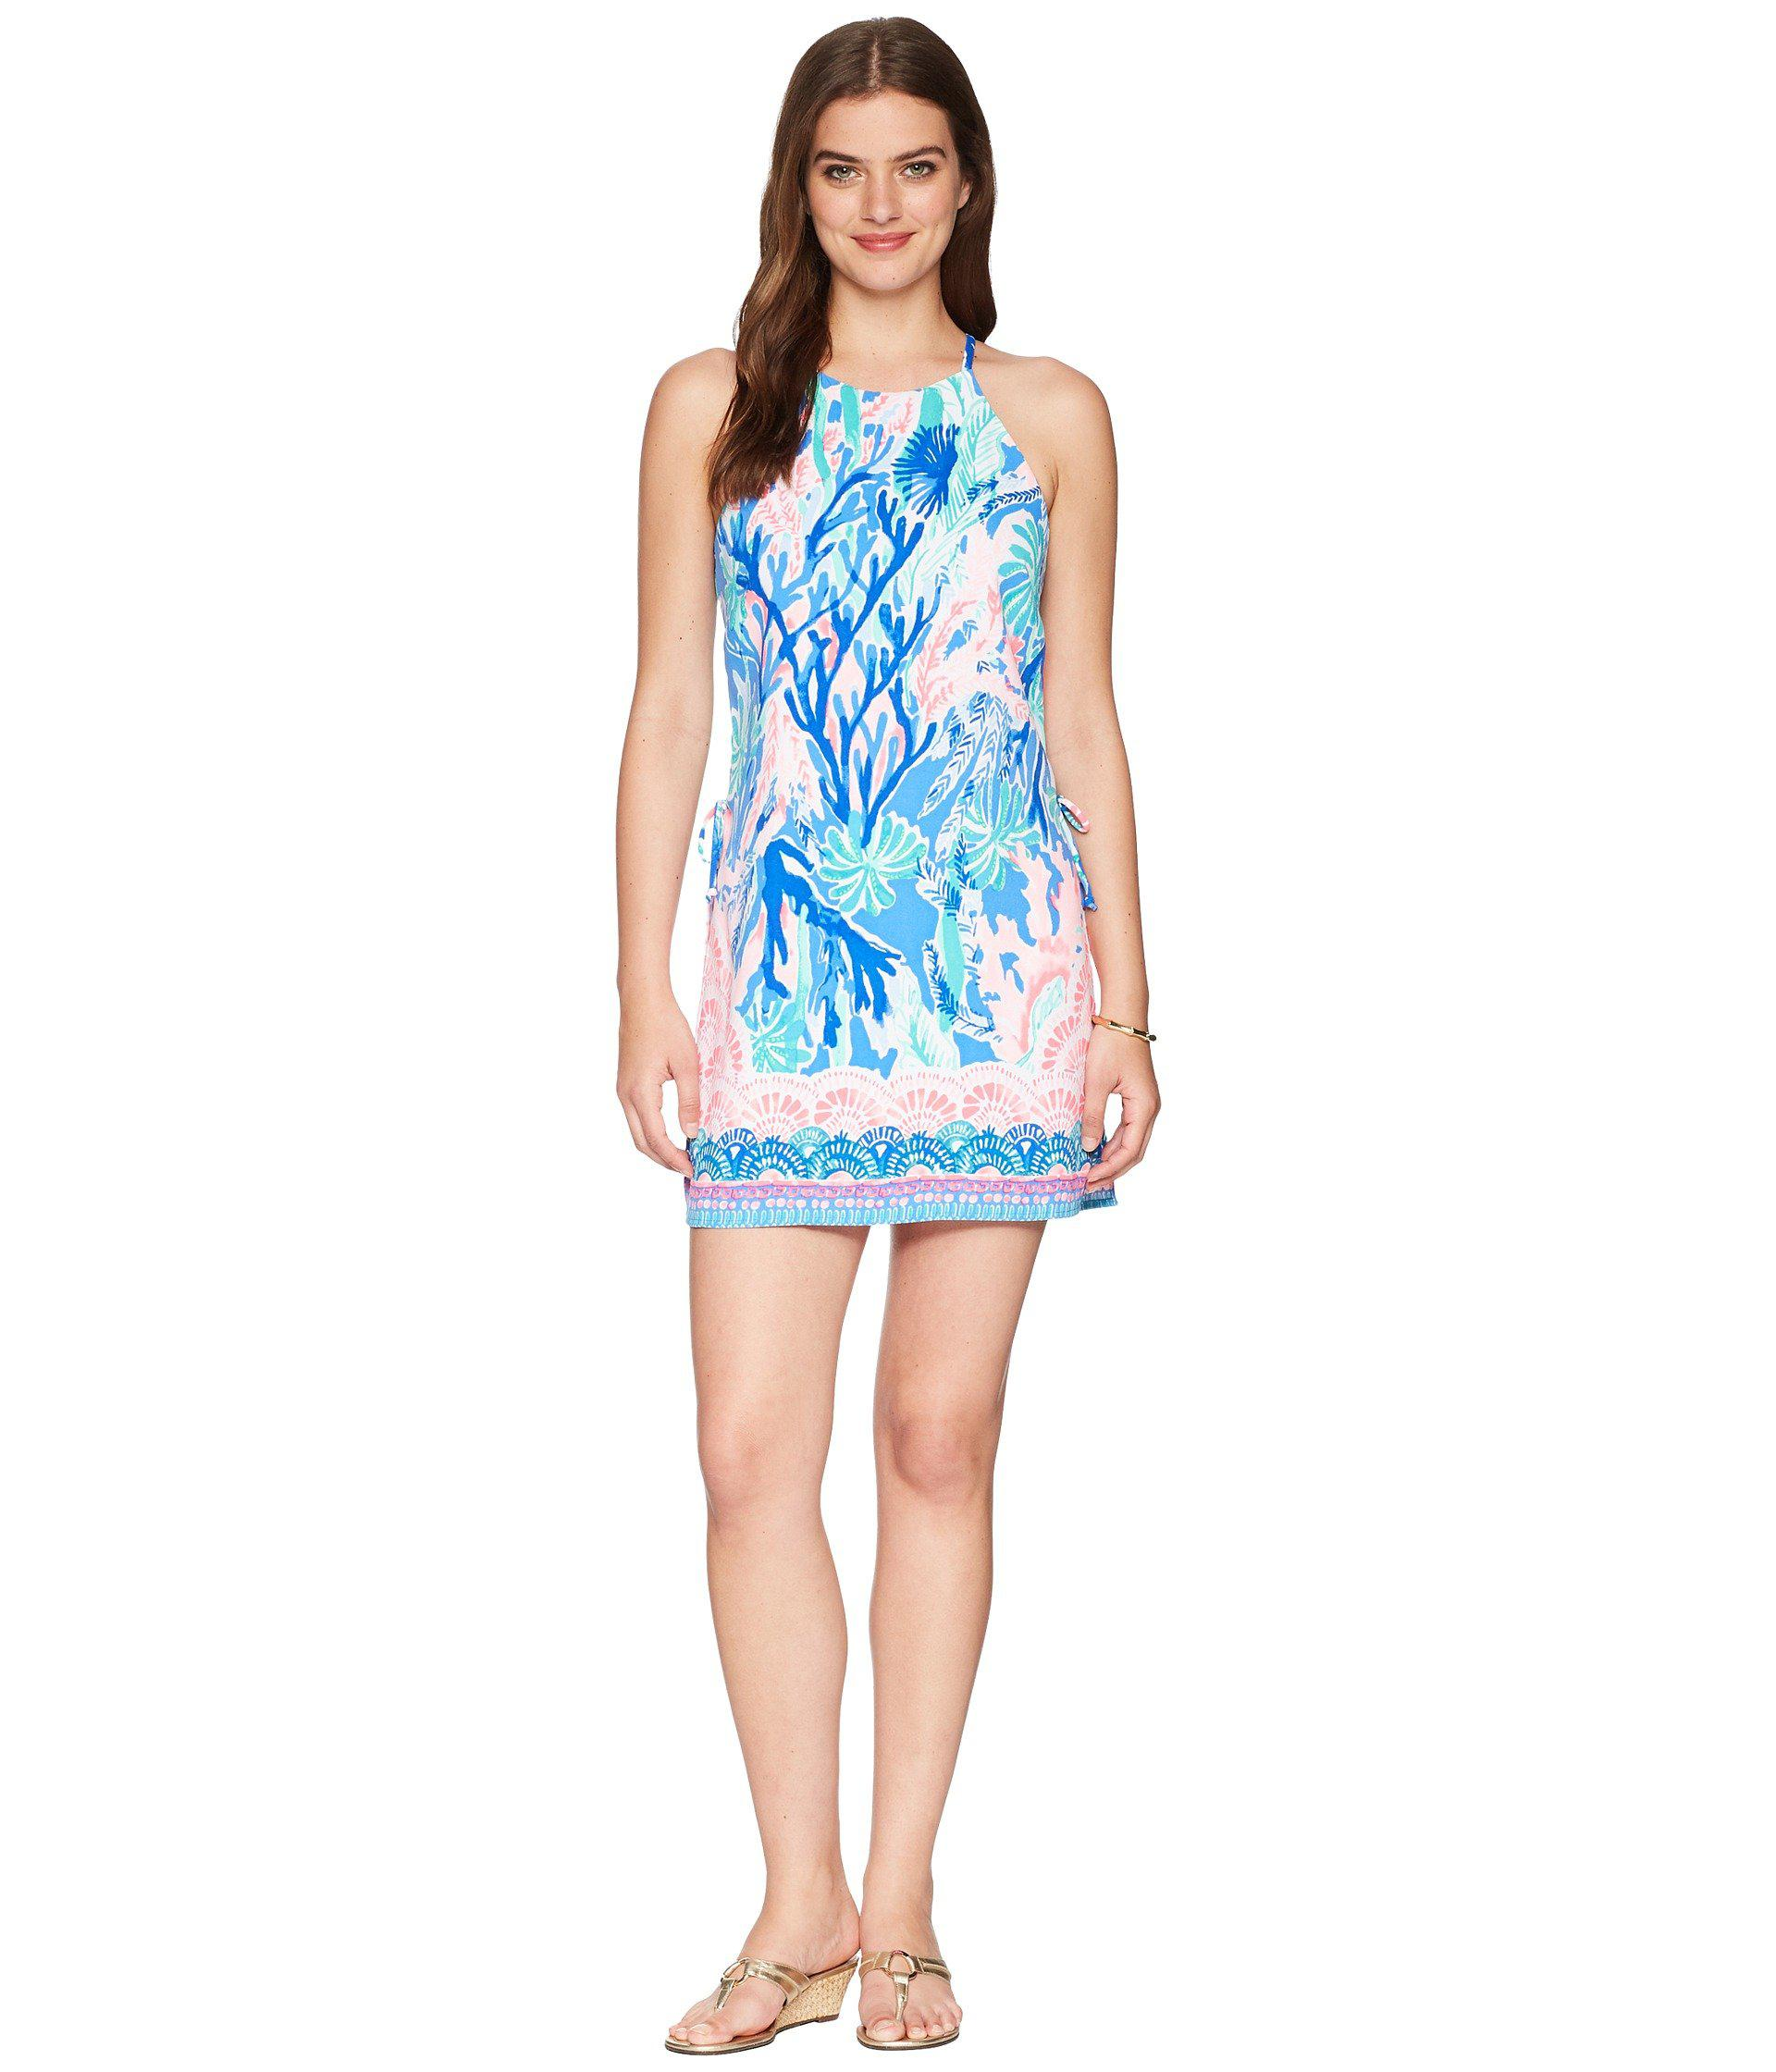 d2da00a1ccd039 Lyst - Lilly Pulitzer Pearl Romper in Blue - Save 50%